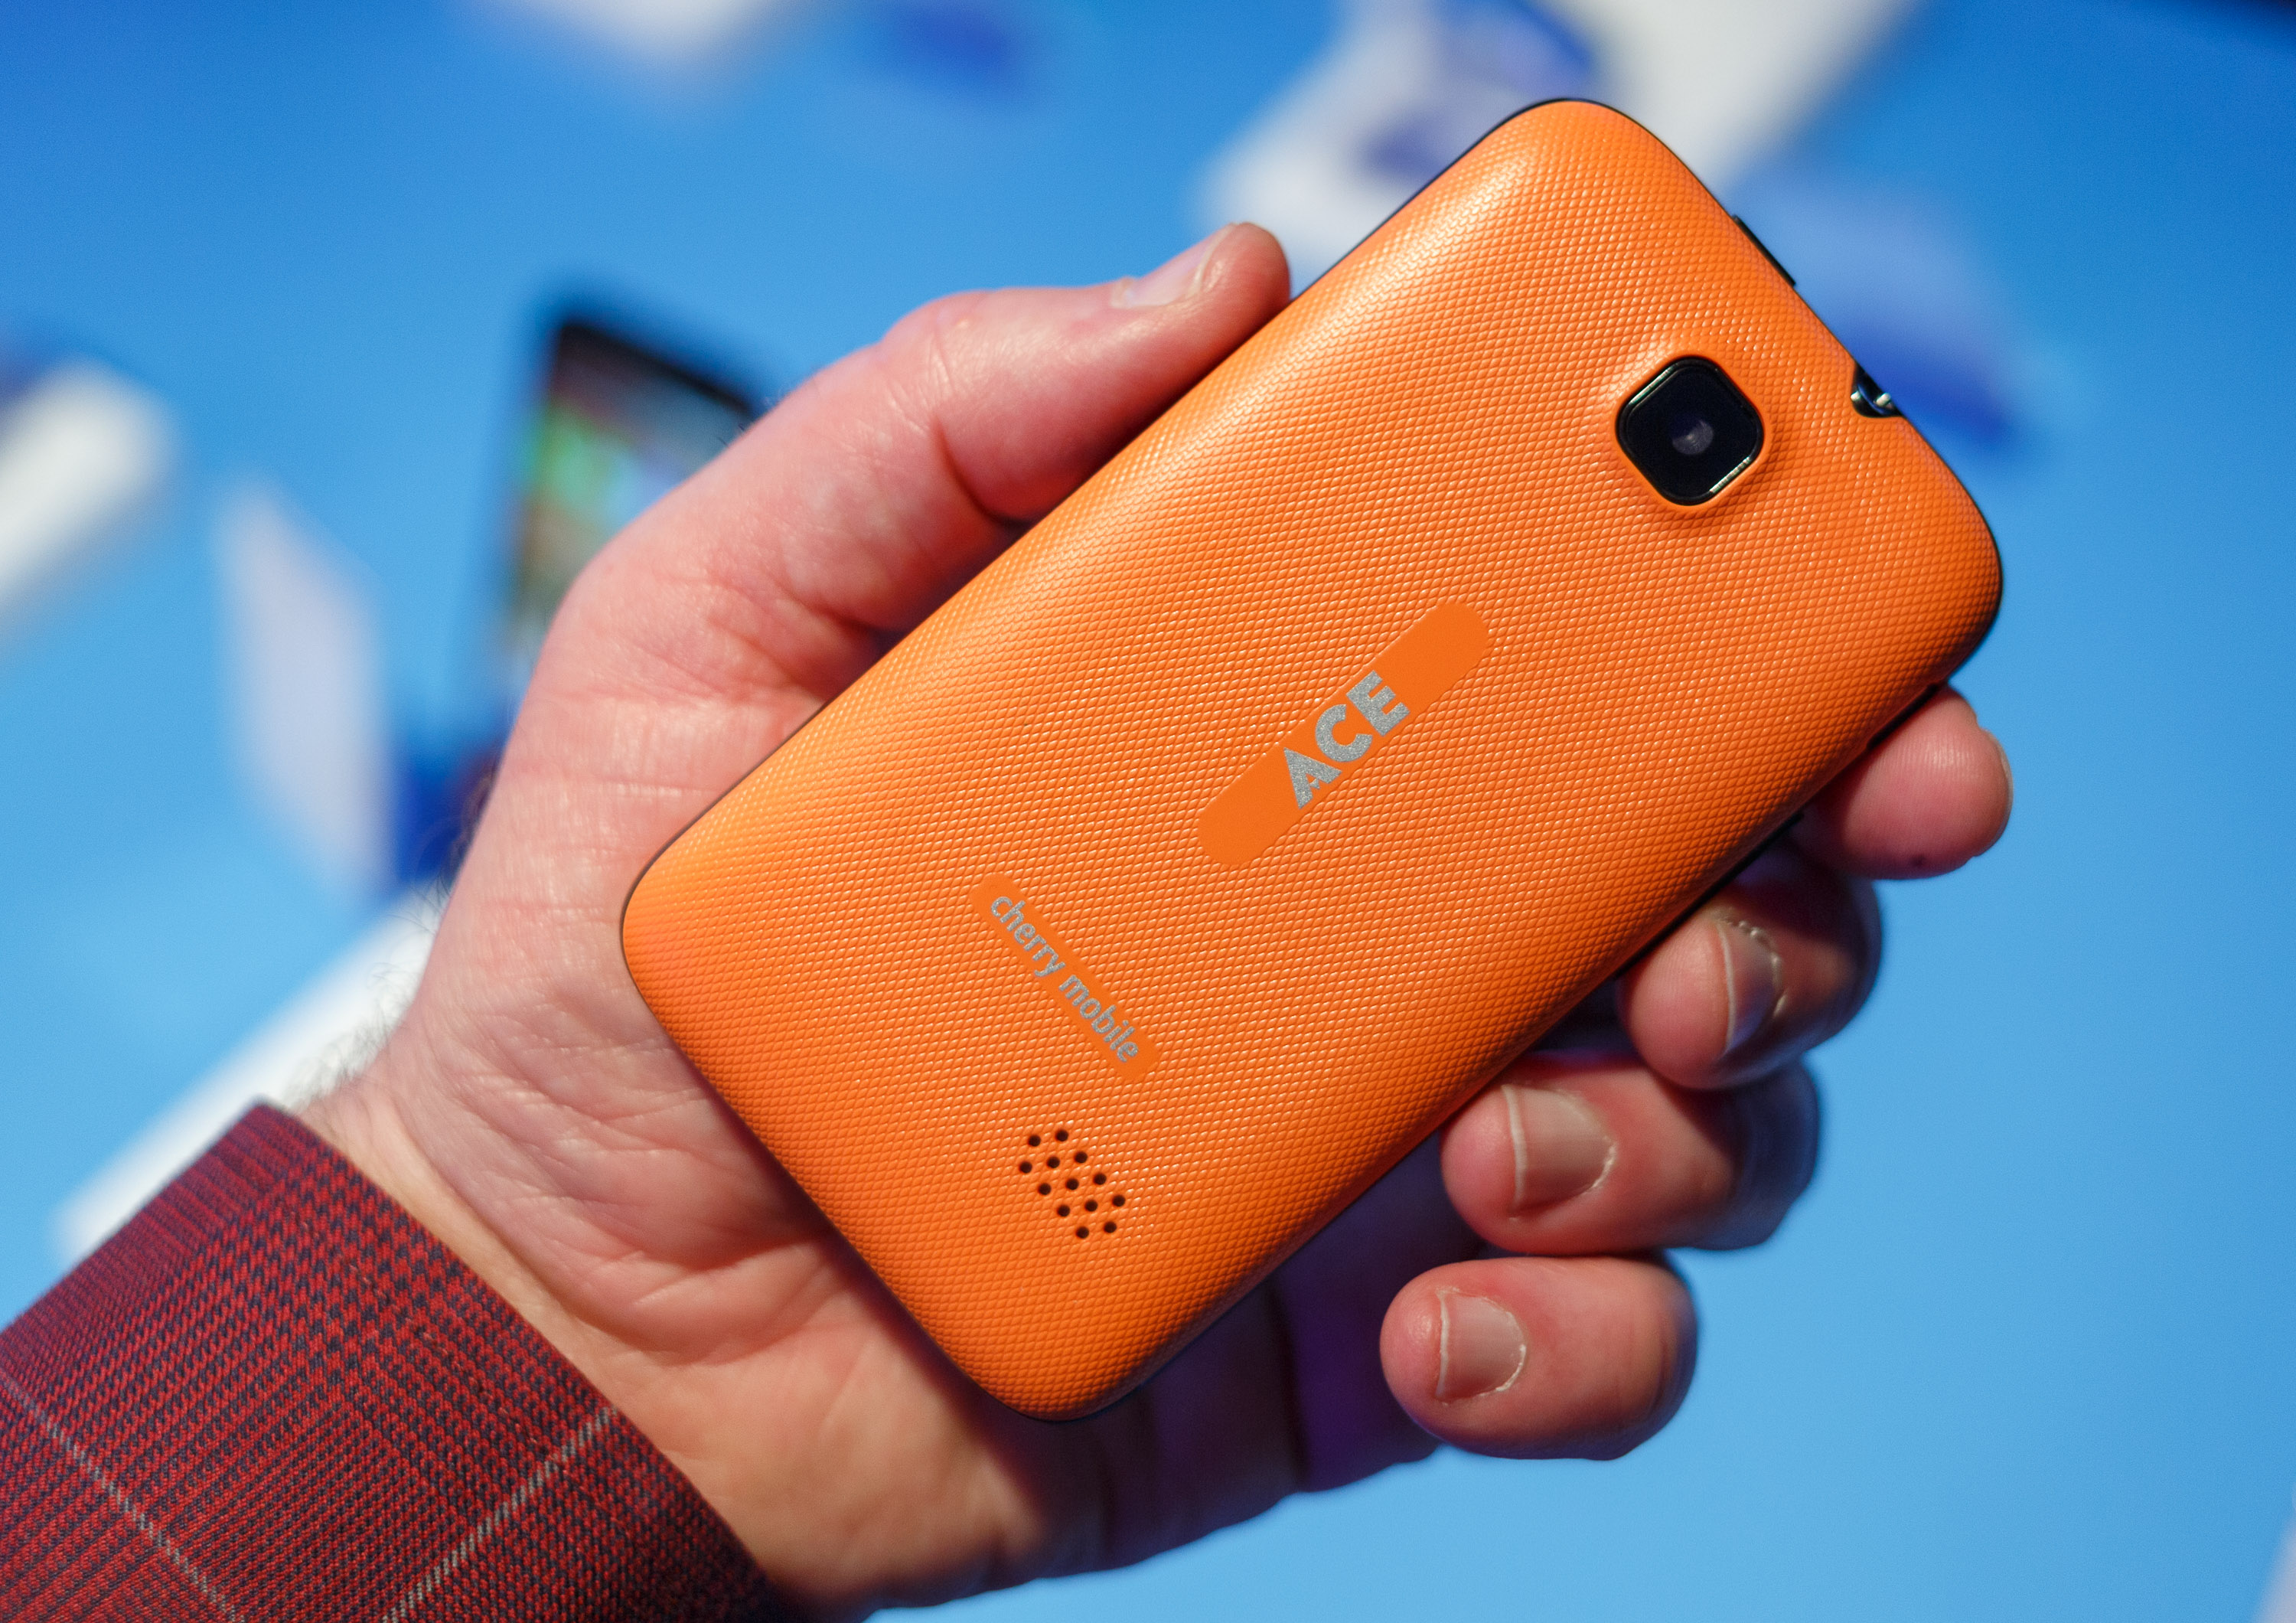 <p>The Ace, available from the Phillipino carrier Cherry Mobile, costs just $23. It runs Firefox OS, Mozilla's browser-based operating system. It's powered by a 1GHz ARM processor made by Chinese chipmaker Spreadtrum.</p>